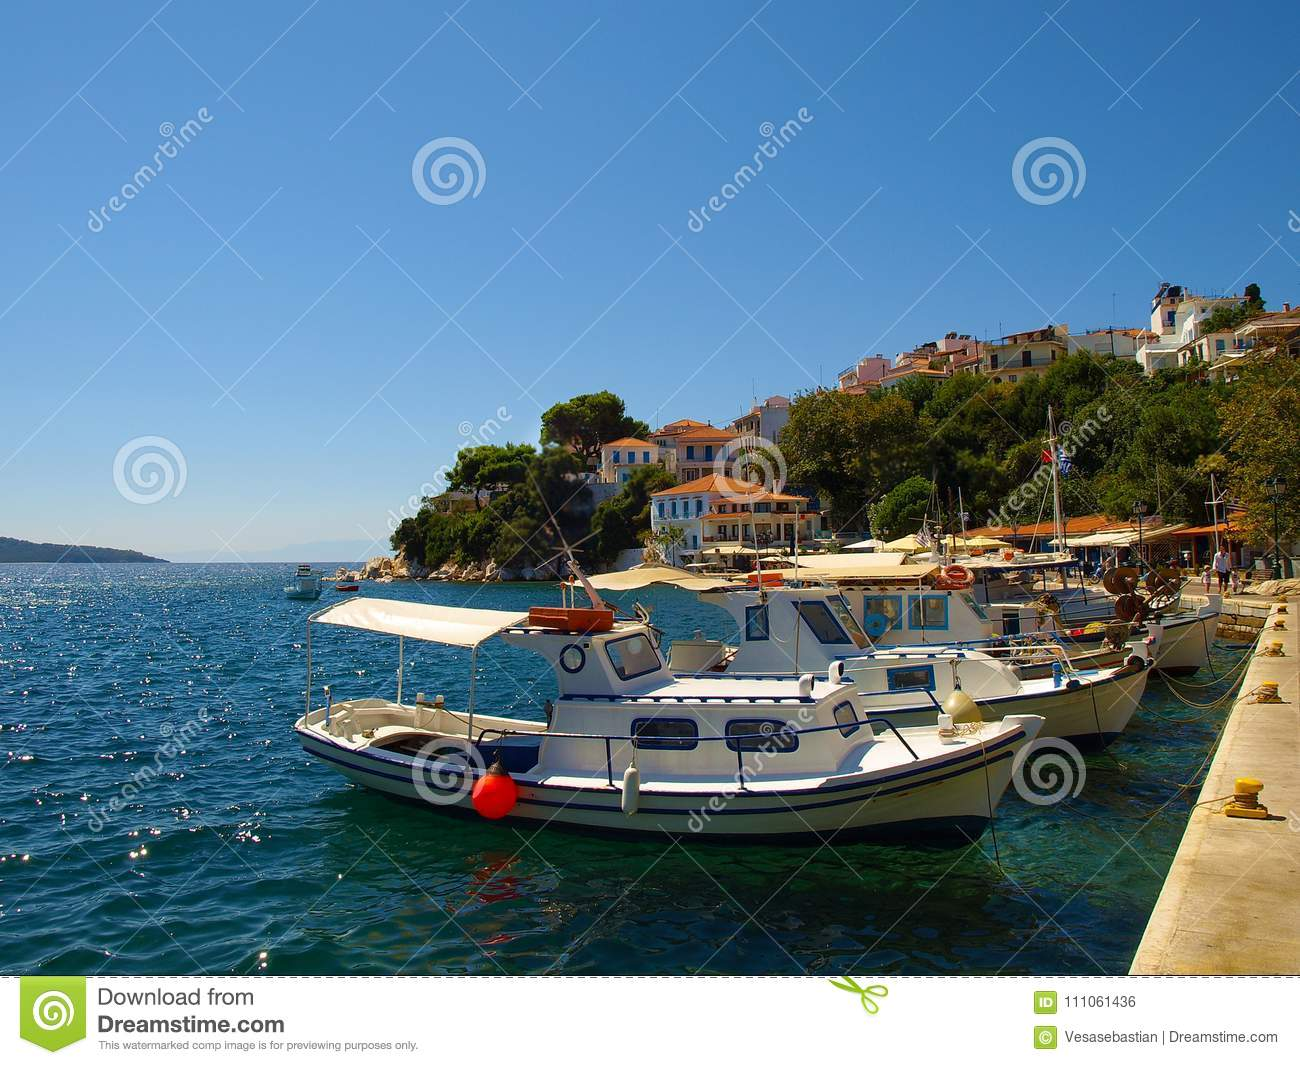 Small fishing boats anchored in the harbour of Skiathos town, Greece